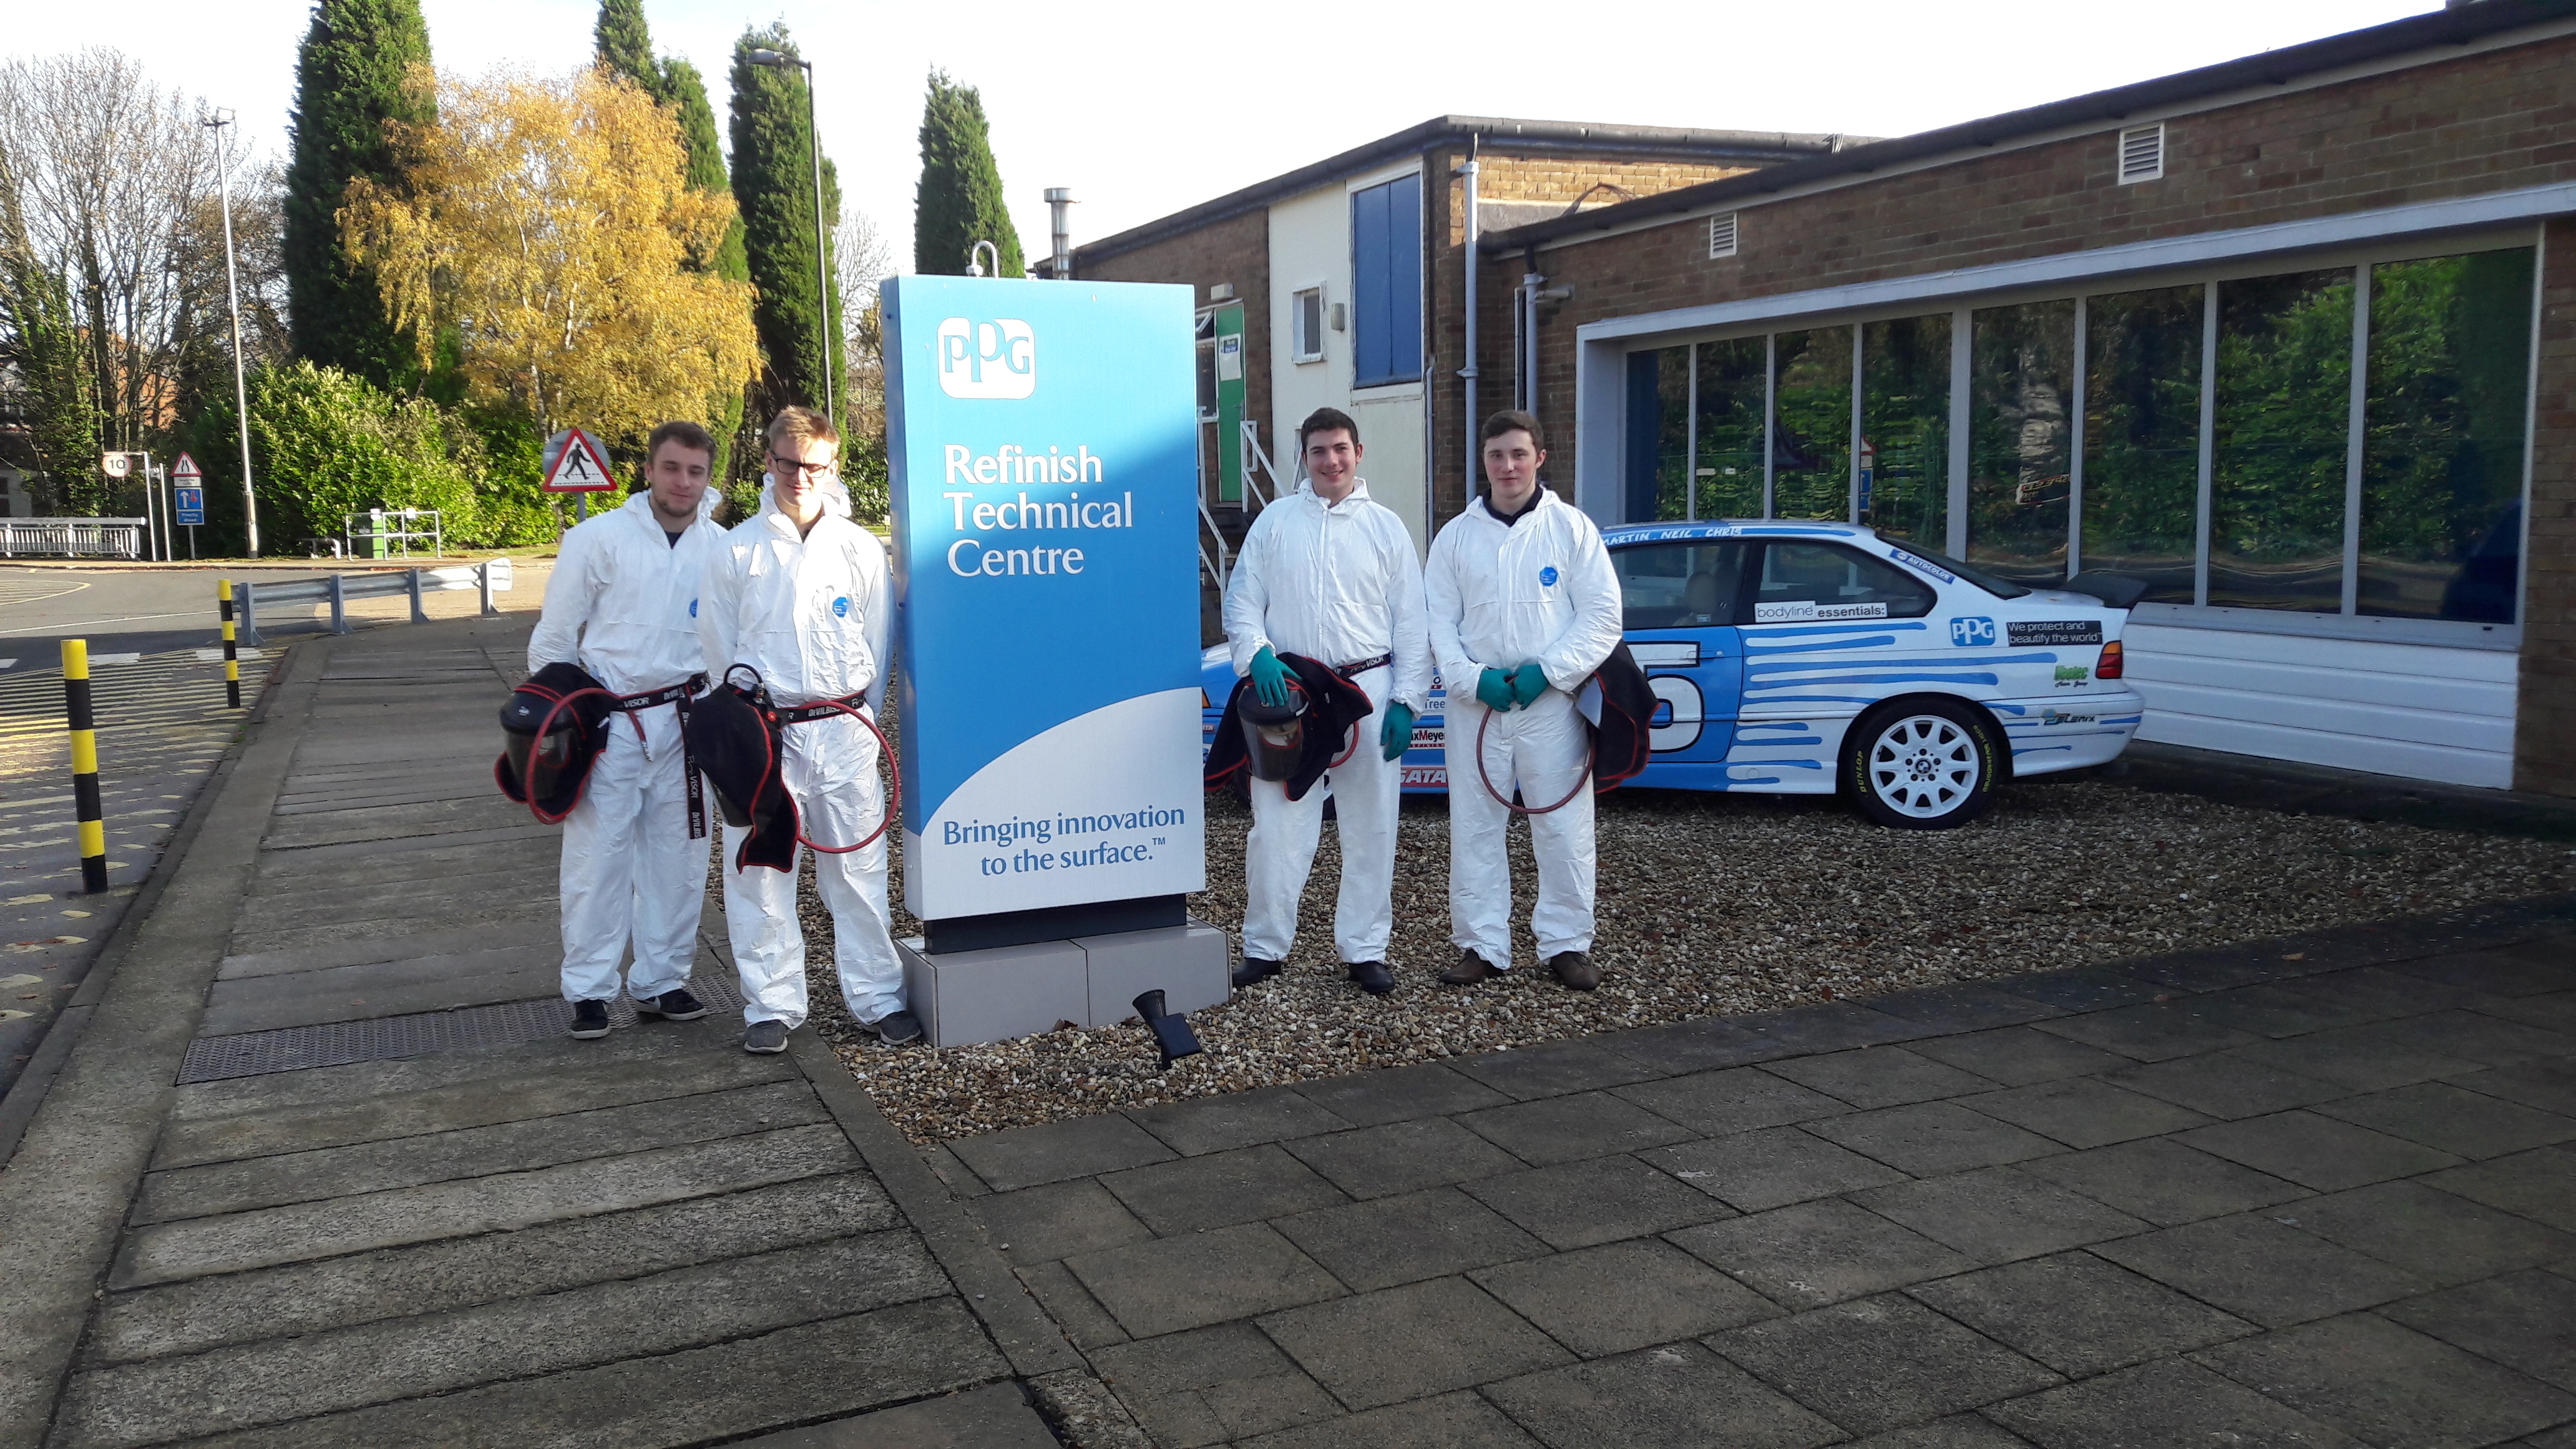 PPG support AW Apprentices